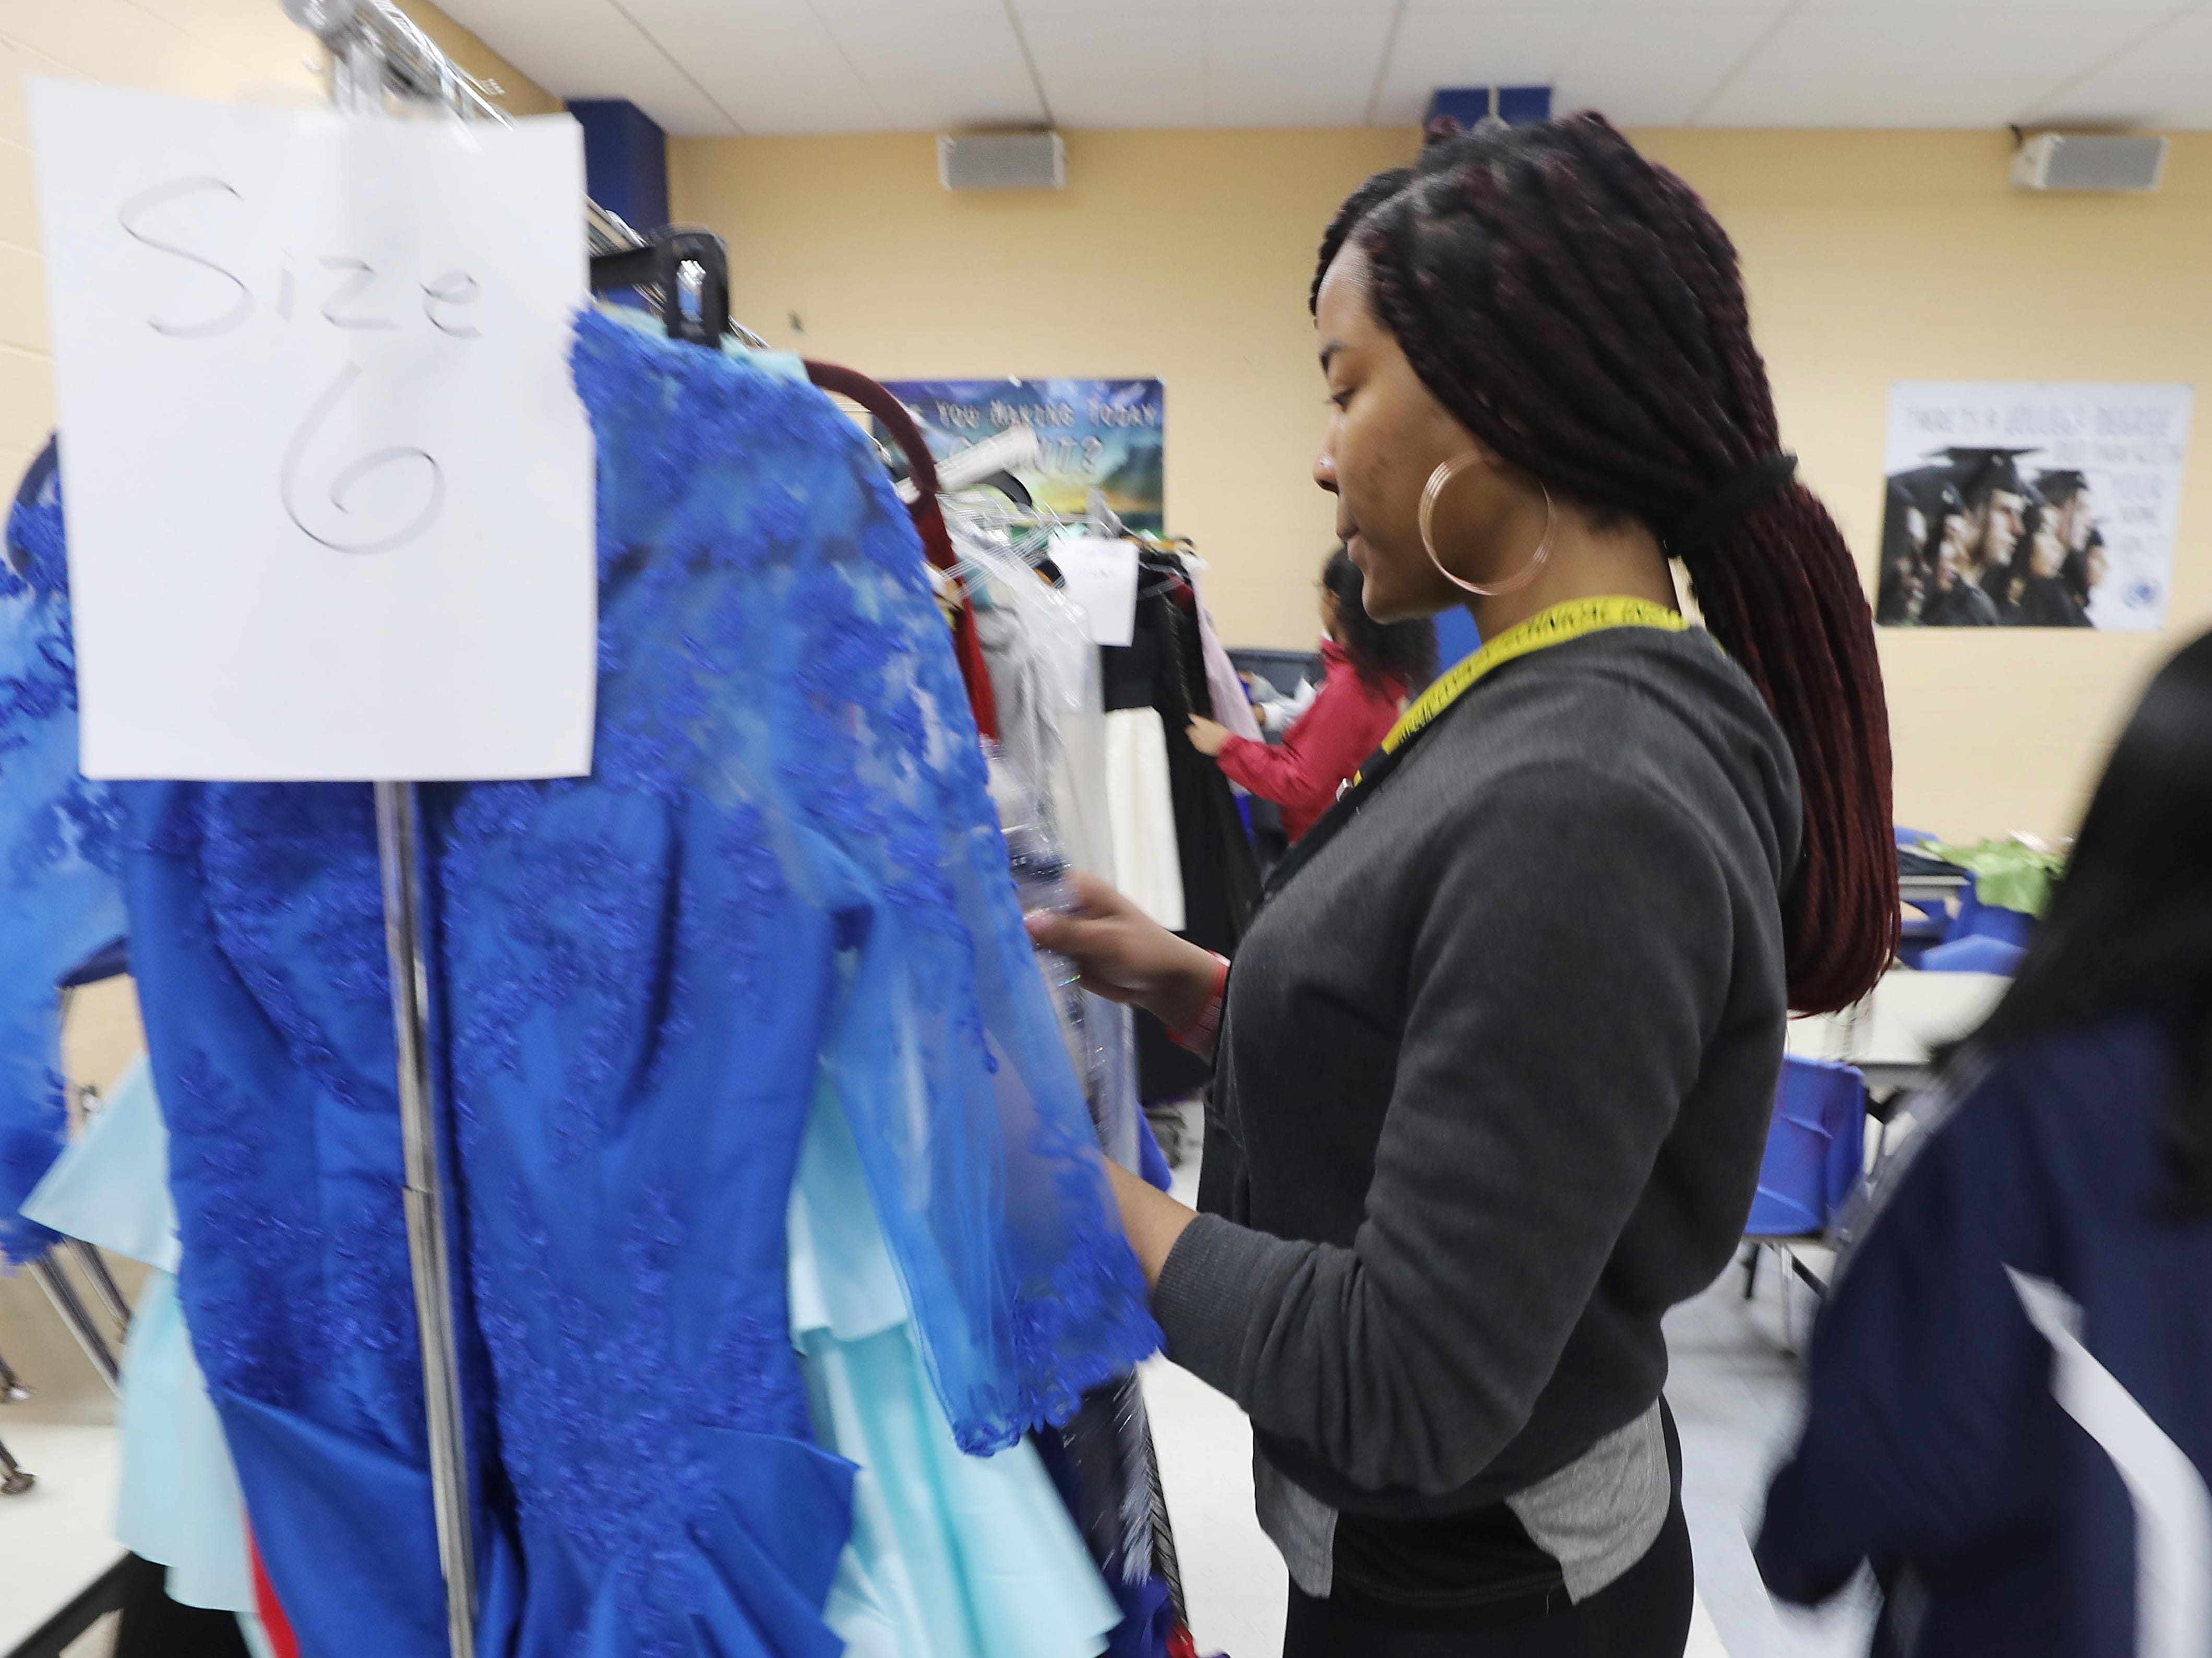 Imani Durham of Paterson is looking for a dress at the annual Prom Gown Giveaway held at Passaic County Technical Institute.